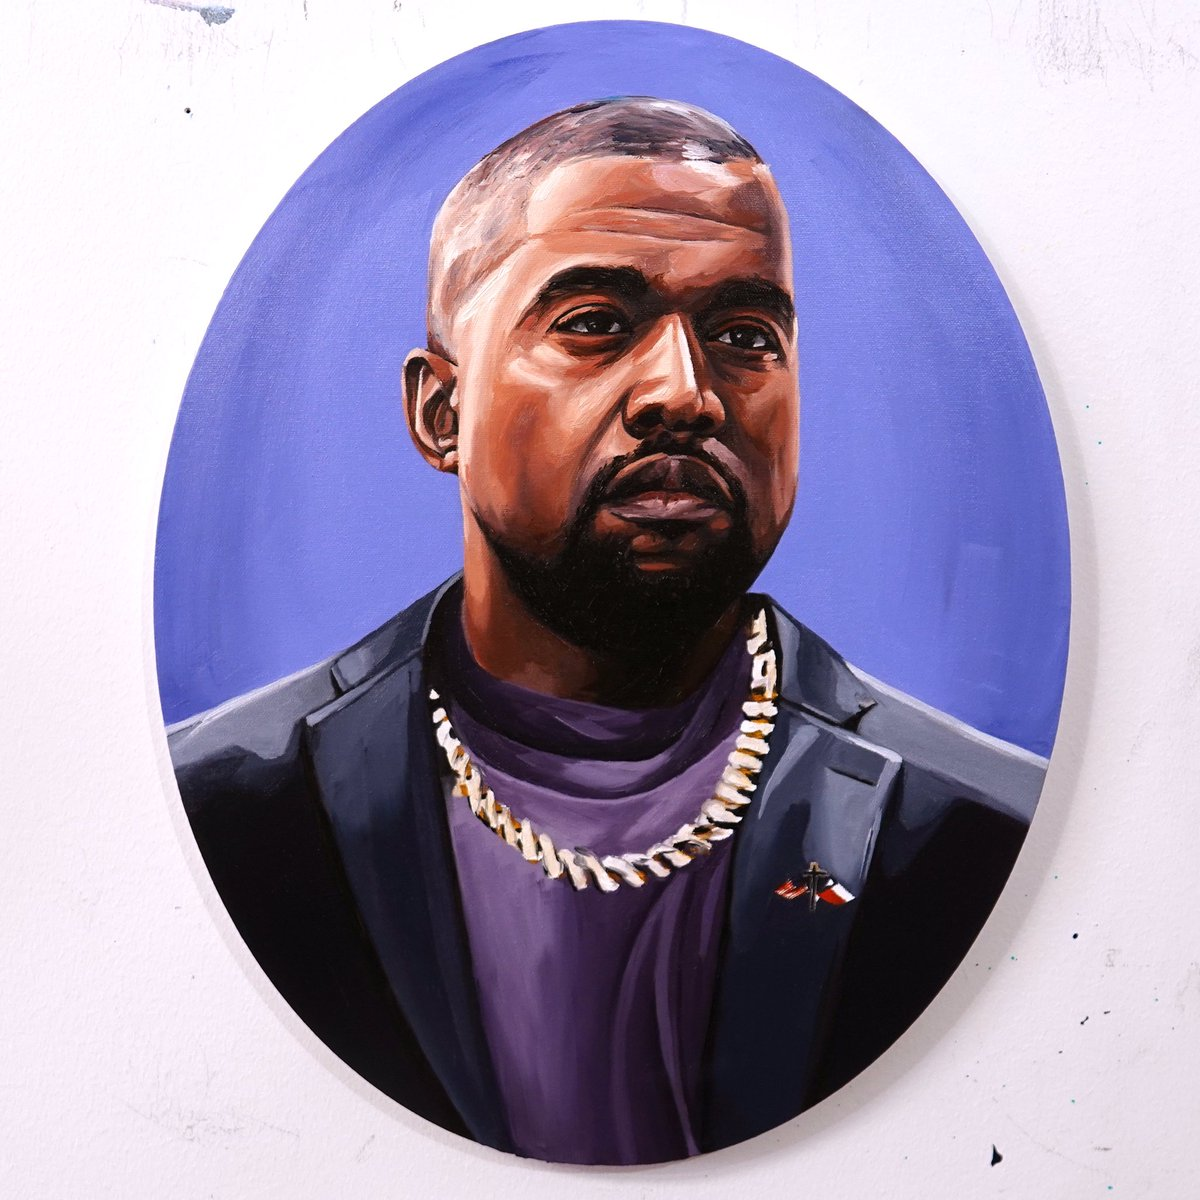 If you believe in me and think that @kanyewest should let me give him this painting; please retweet this. I am 100% determined to atleast get him to see this.